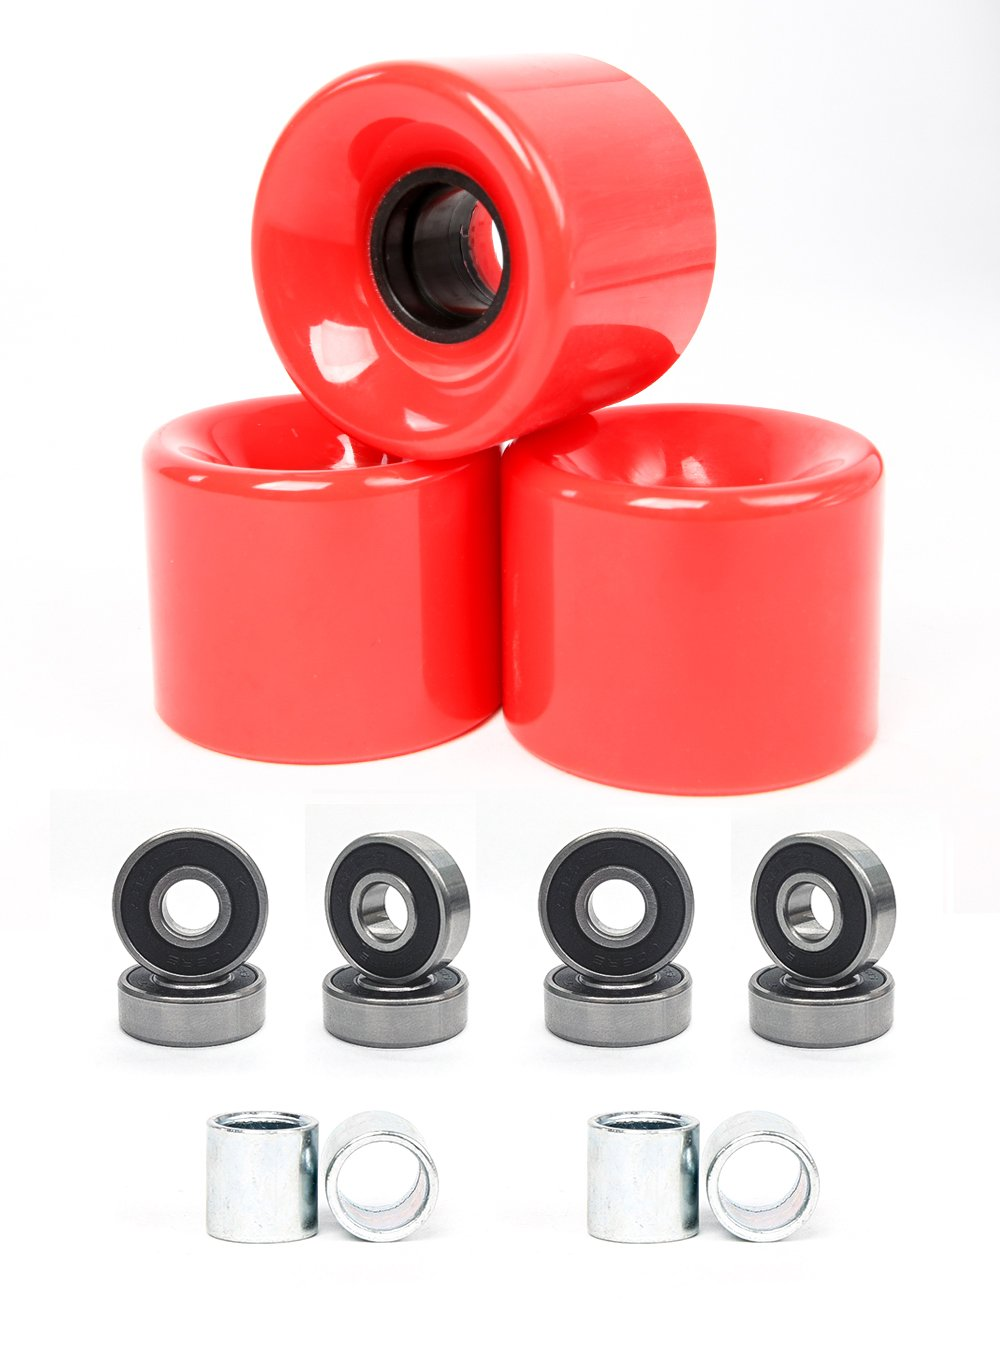 FREEDARE 58mm Skateboard Wheels 82a + ABEC-7 Bearing Steel and Spacers Cruiser Wheels (Red, Pack of 4) by FREEDARE